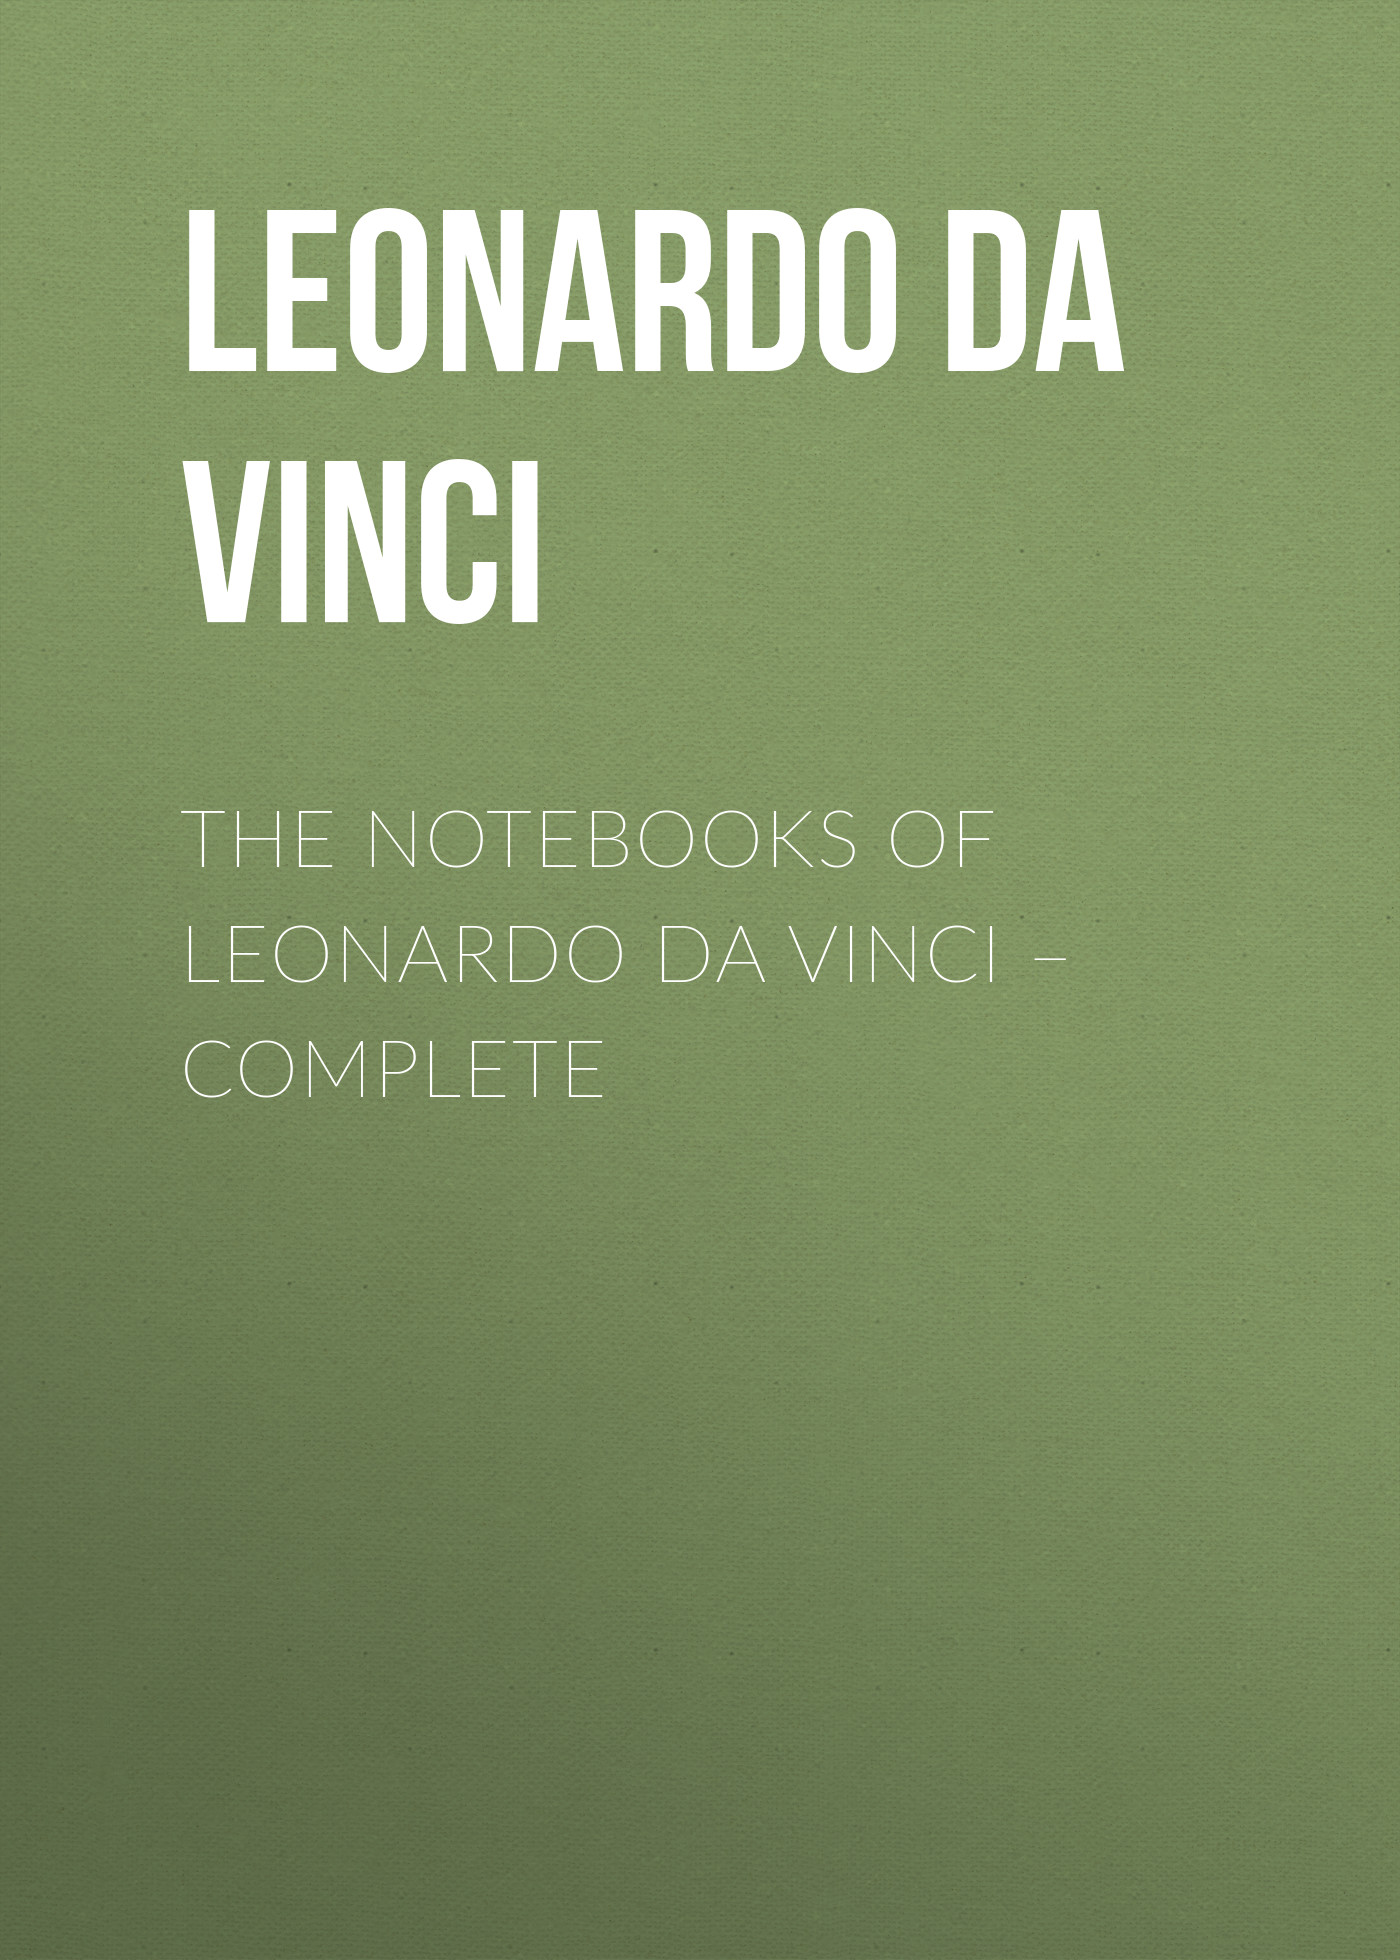 Leonardo da Vinci The Notebooks of Leonardo Da Vinci. Complete цена